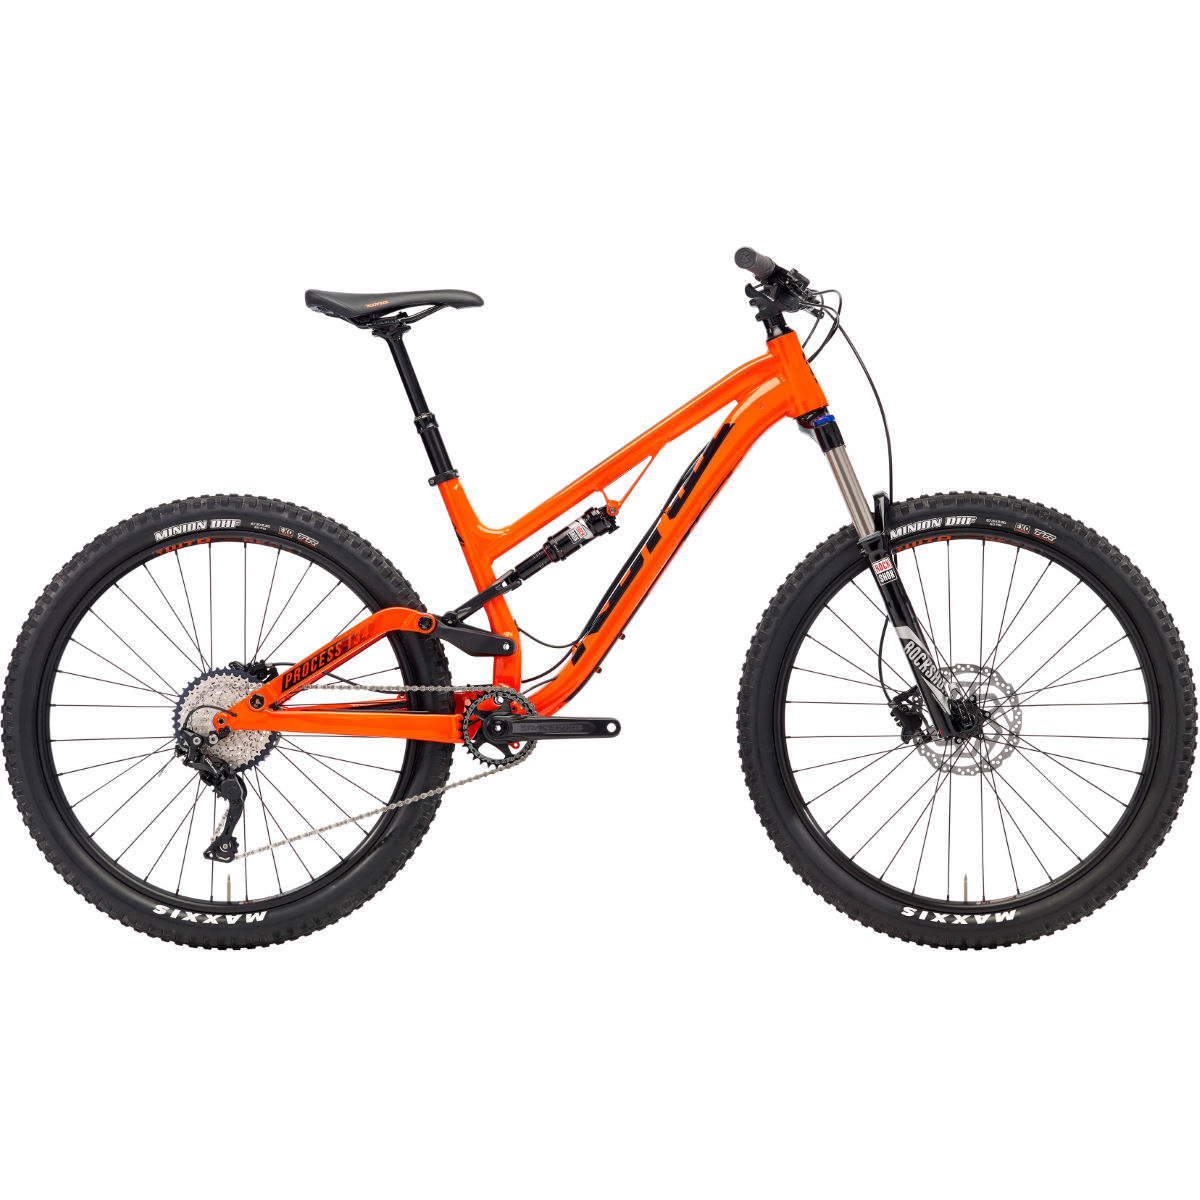 VTT Kona Process 134 SE (2018) - Small Stock Bike Orange